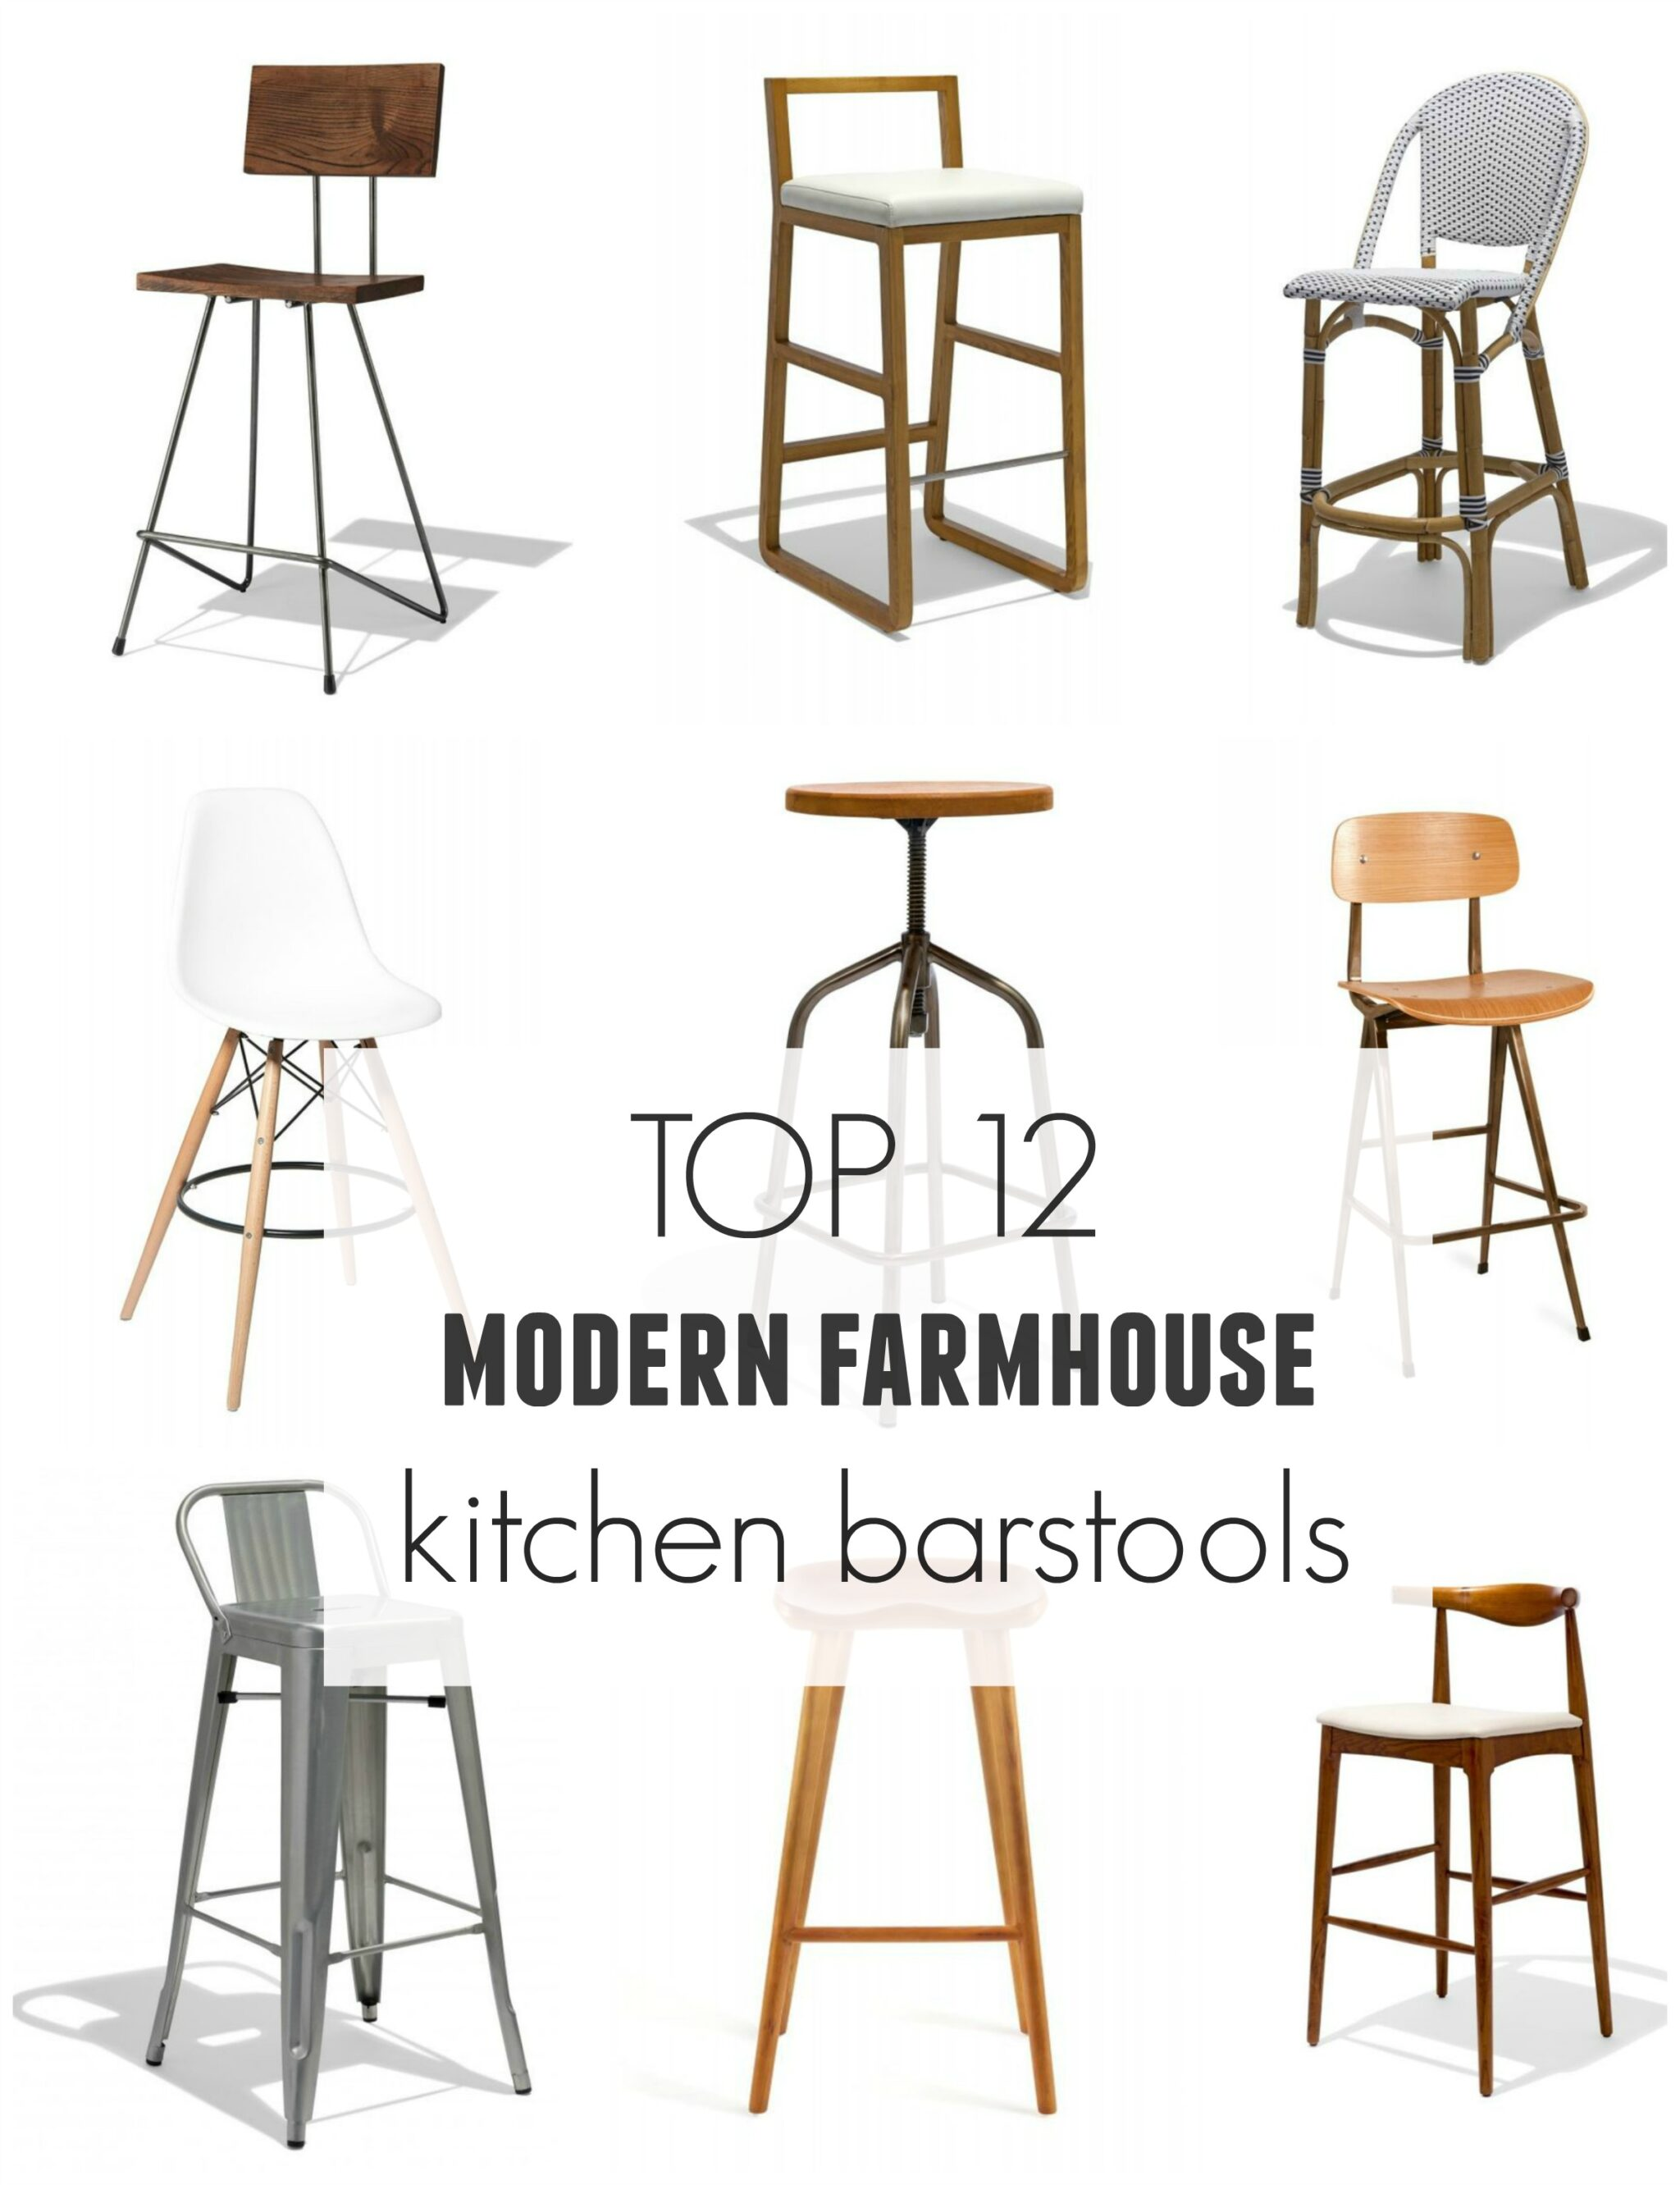 Top 12 Modern Farmhouse Barstools - City Farmhouse